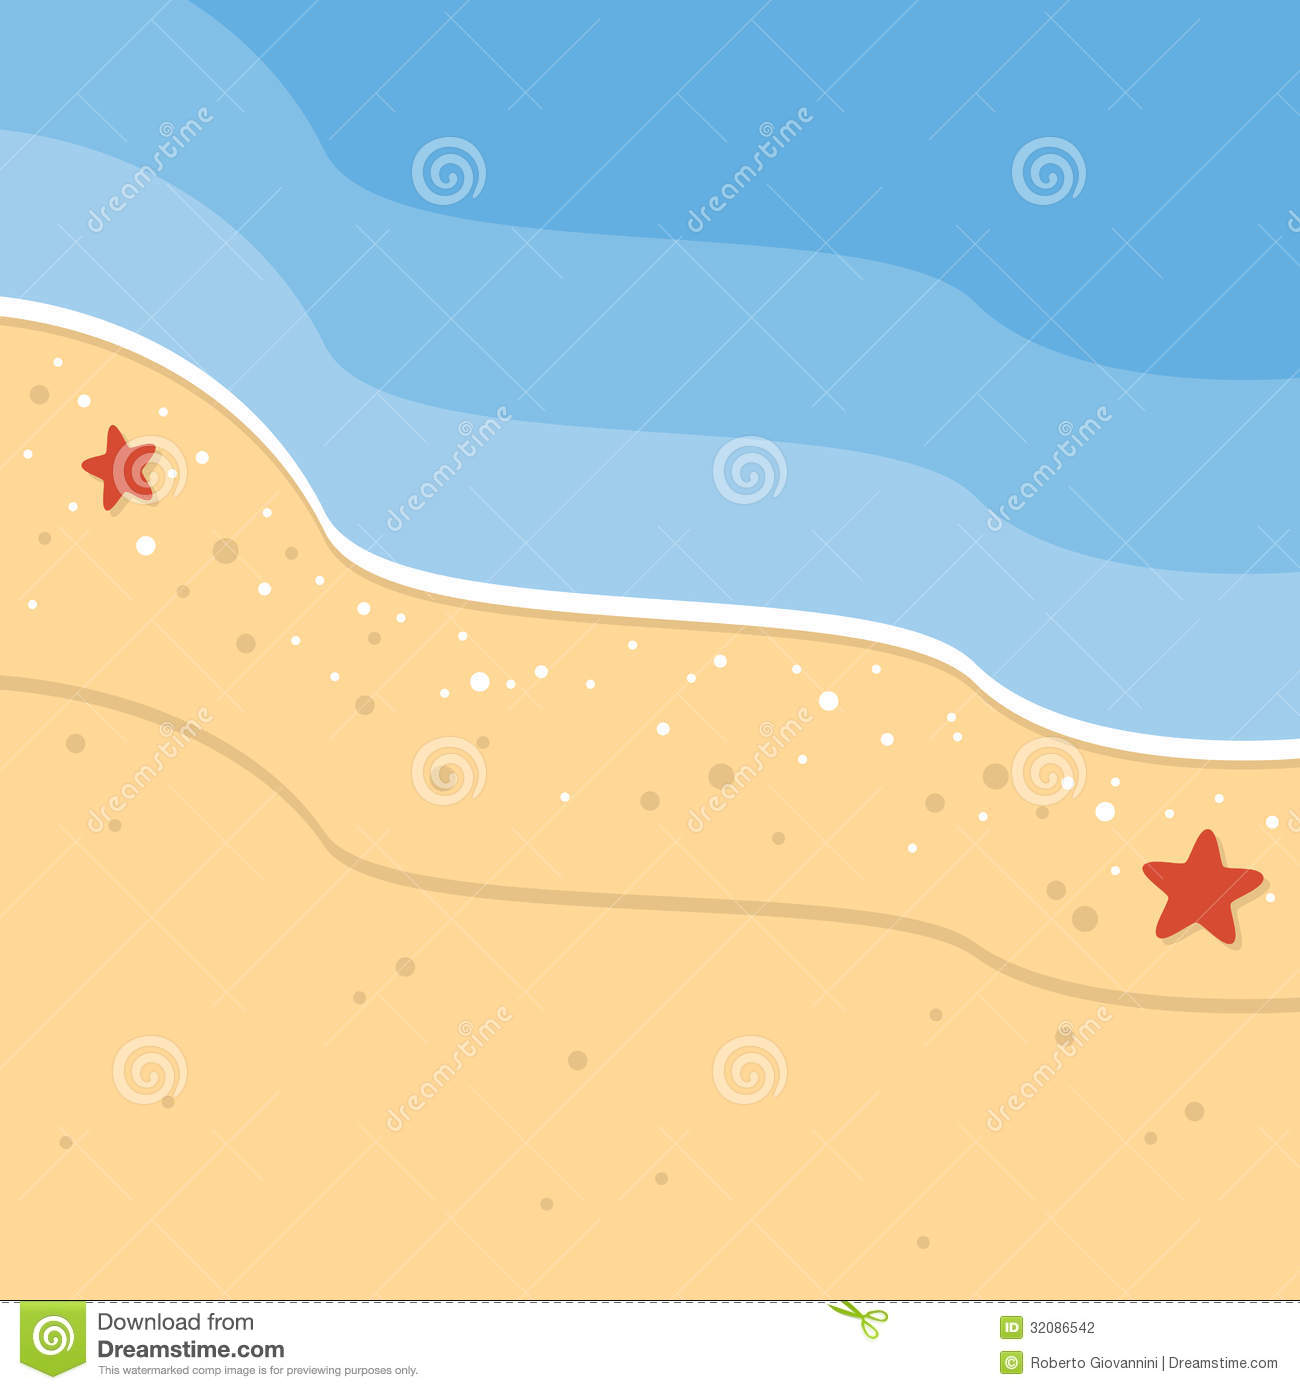 Sand Beach Tropical Seashore Background With Starfish And The Sea